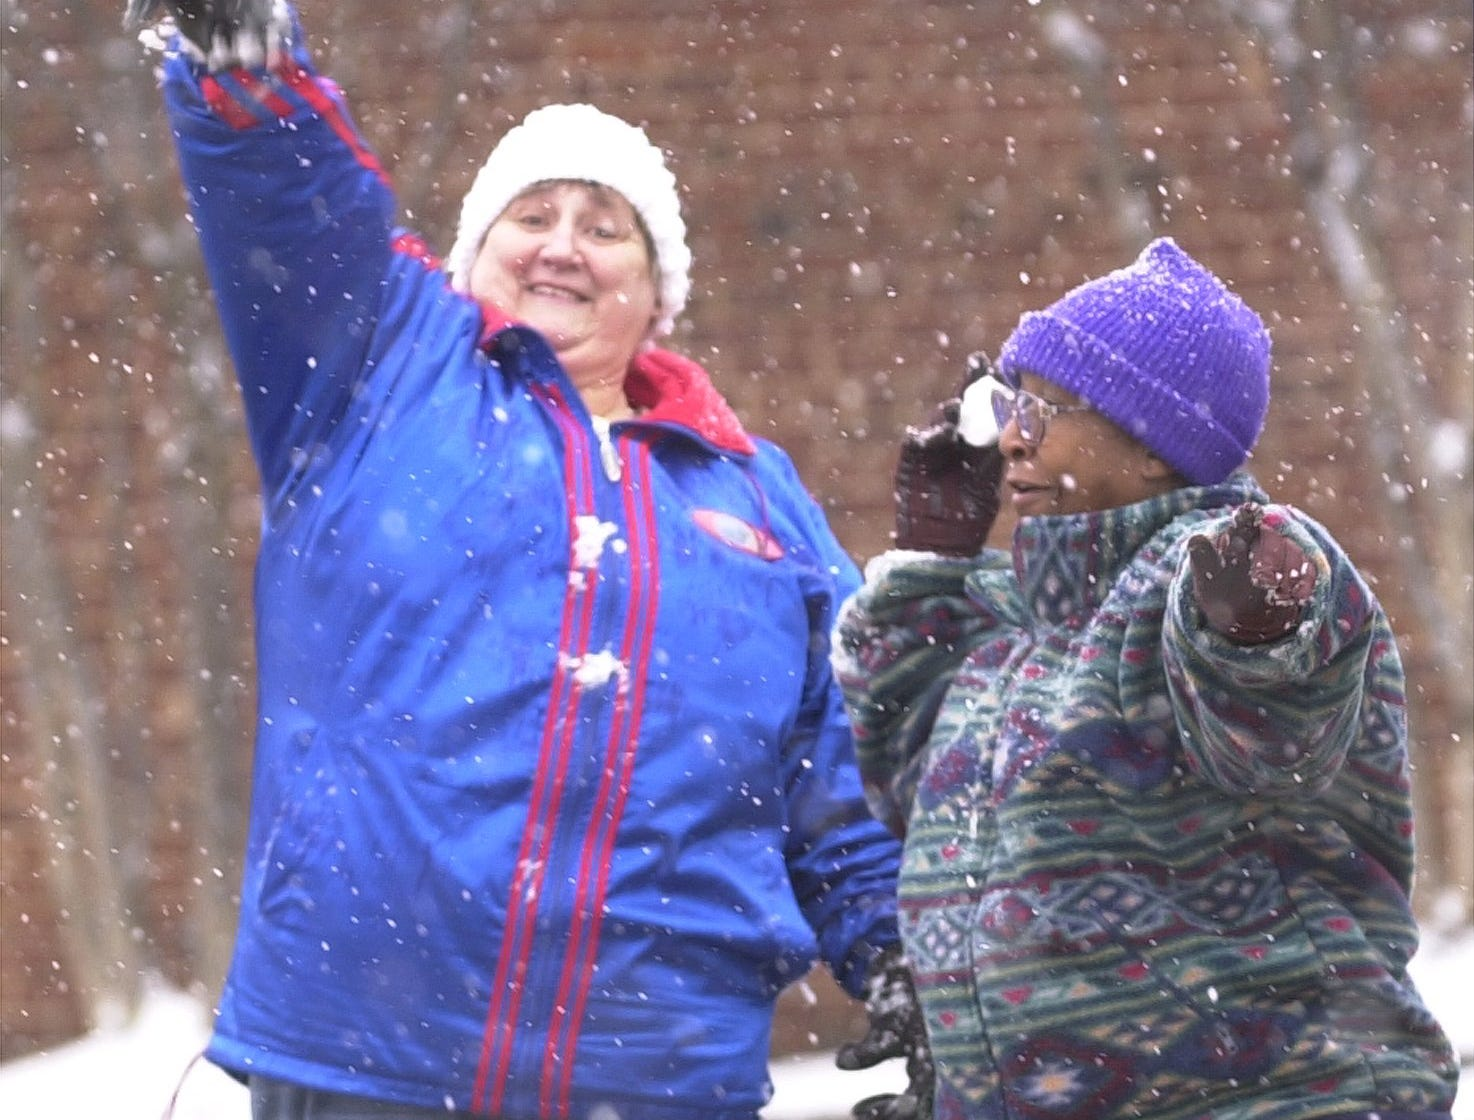 Joann McGowan (left) and Shirley Robinson (right) take advantage of the snow and throw snowballs along Richardson St. in downtown Greenville January, 3, 2002.